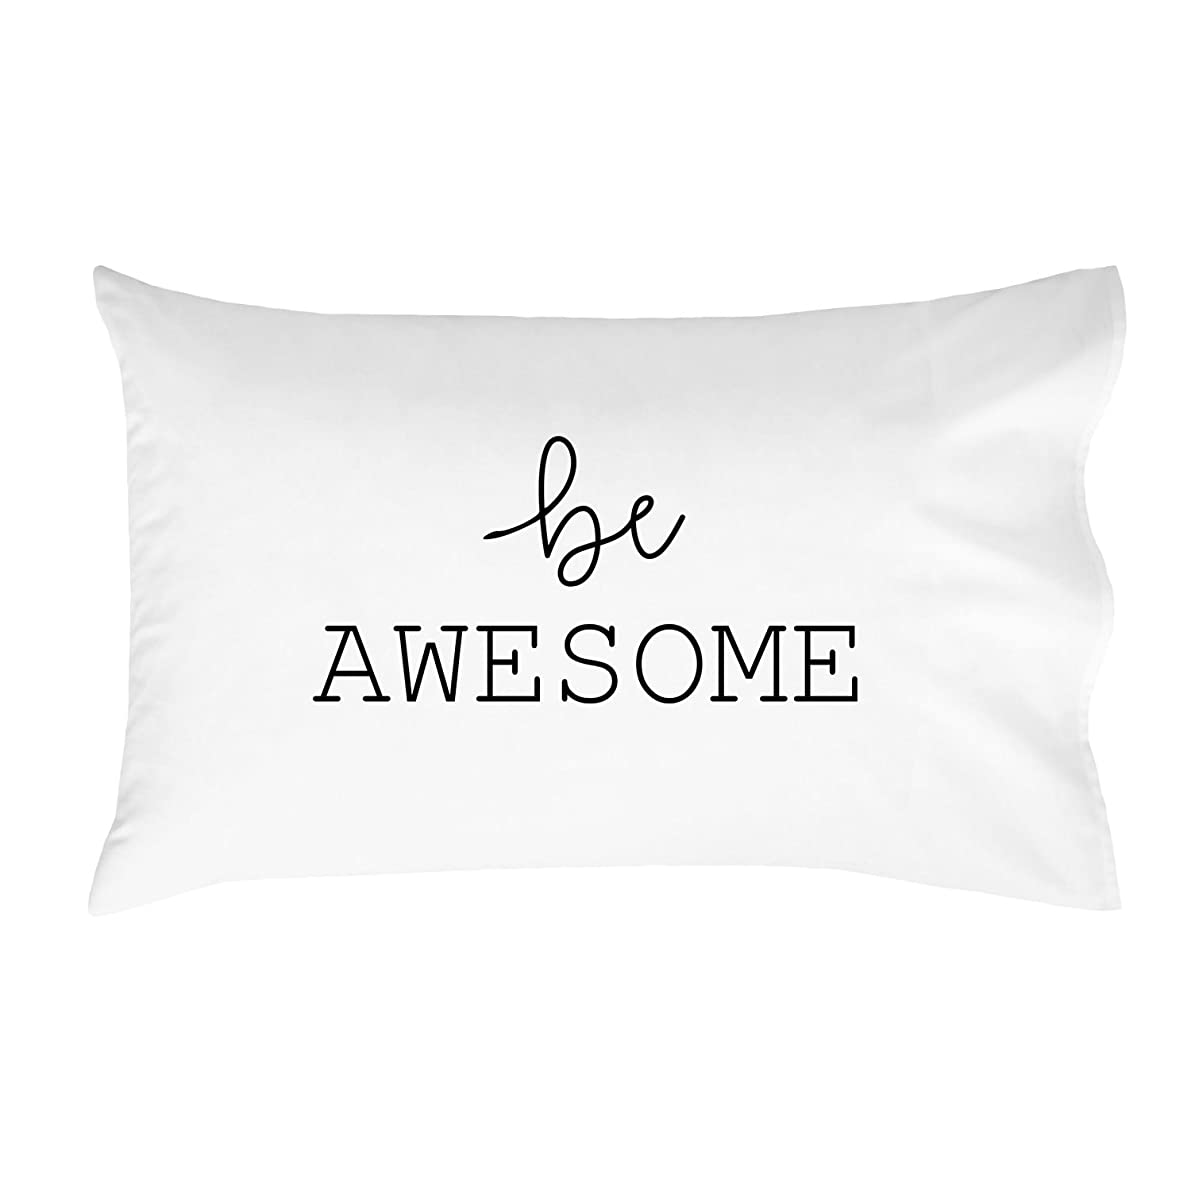 Oh, Susannah be Awesome Pillowcases - Standard Size Pillowcase(1 20x30 inch, Black) Graduation Gifts College Fun Pillowcases Dorm Room Accessories